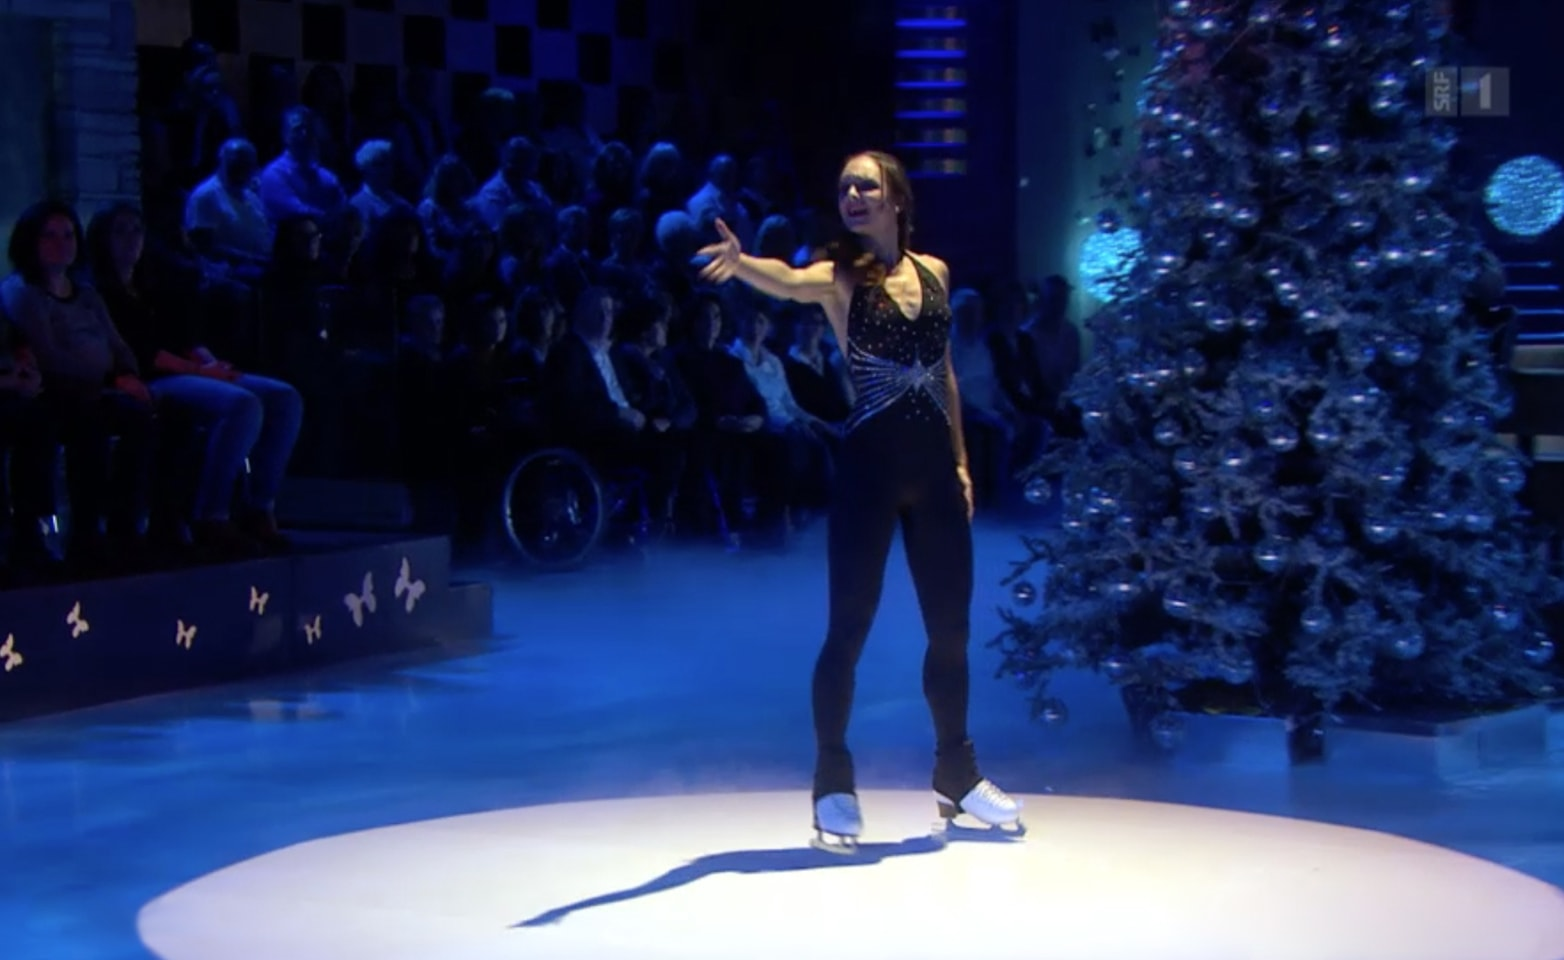 Synthetic ice rink used for figure skating performance on German TV show